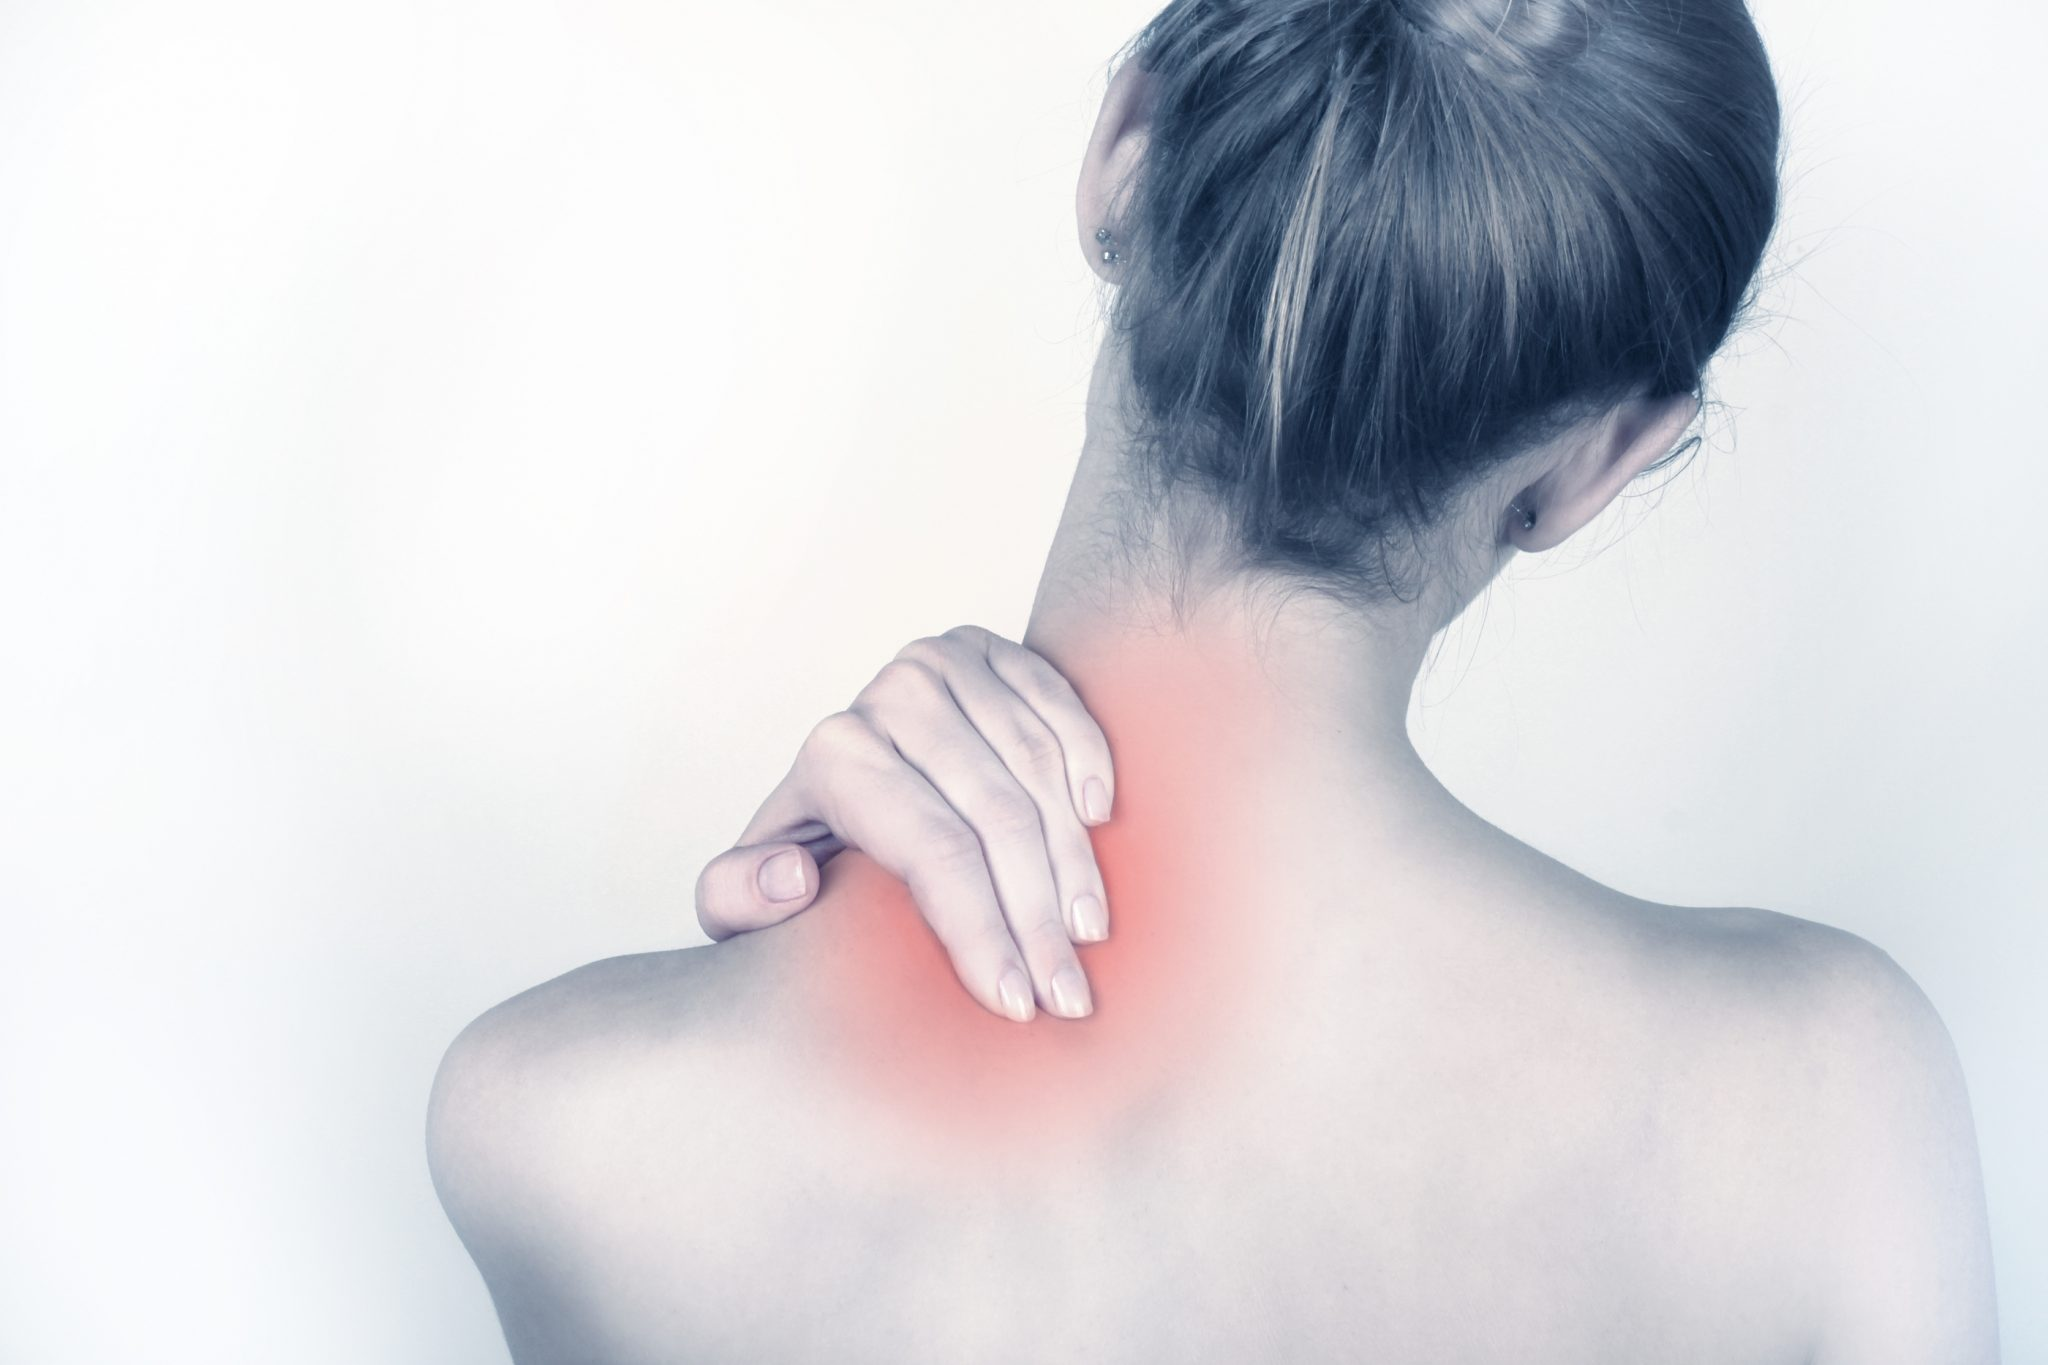 Arthritis Upper Arms And Shoulders